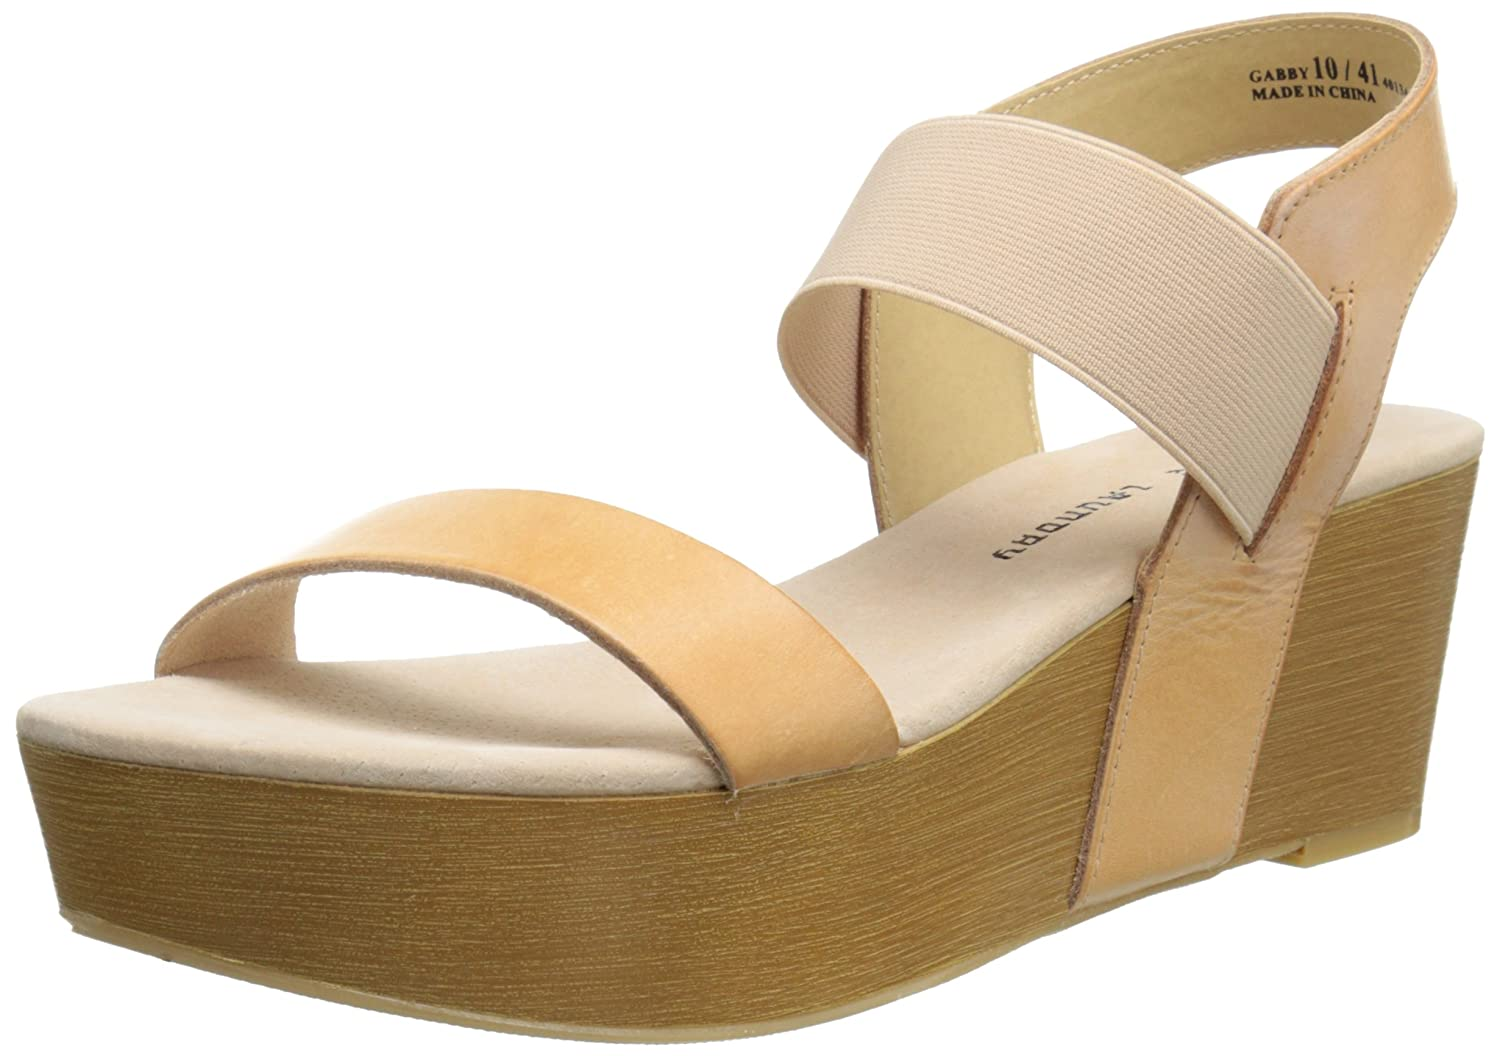 Chinese Laundry Women's Gabby Wedge Sandal B00NQEXZLI 9 B(M) US|Hazelnut Leather